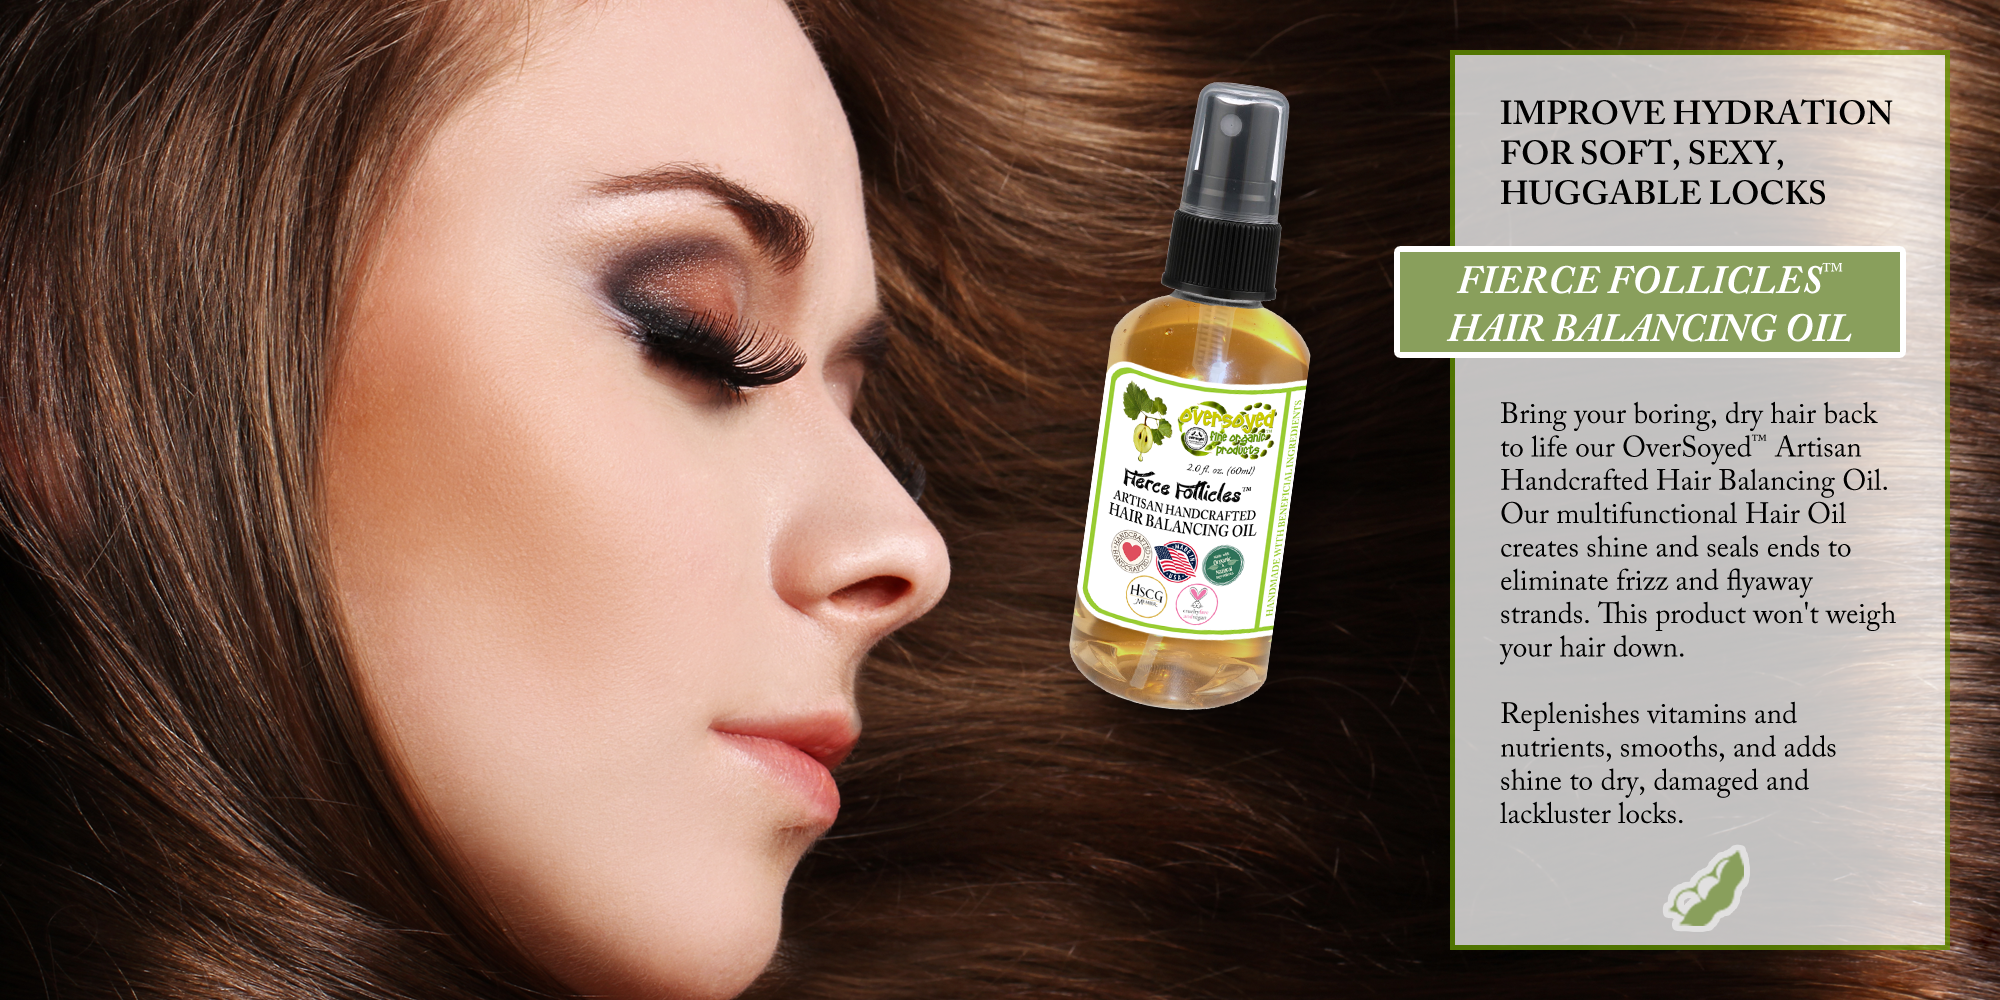 OverSoyed Fine Organic Products - Fierce Follicles™ Artisan Handcrafted Hair Balancing Oil